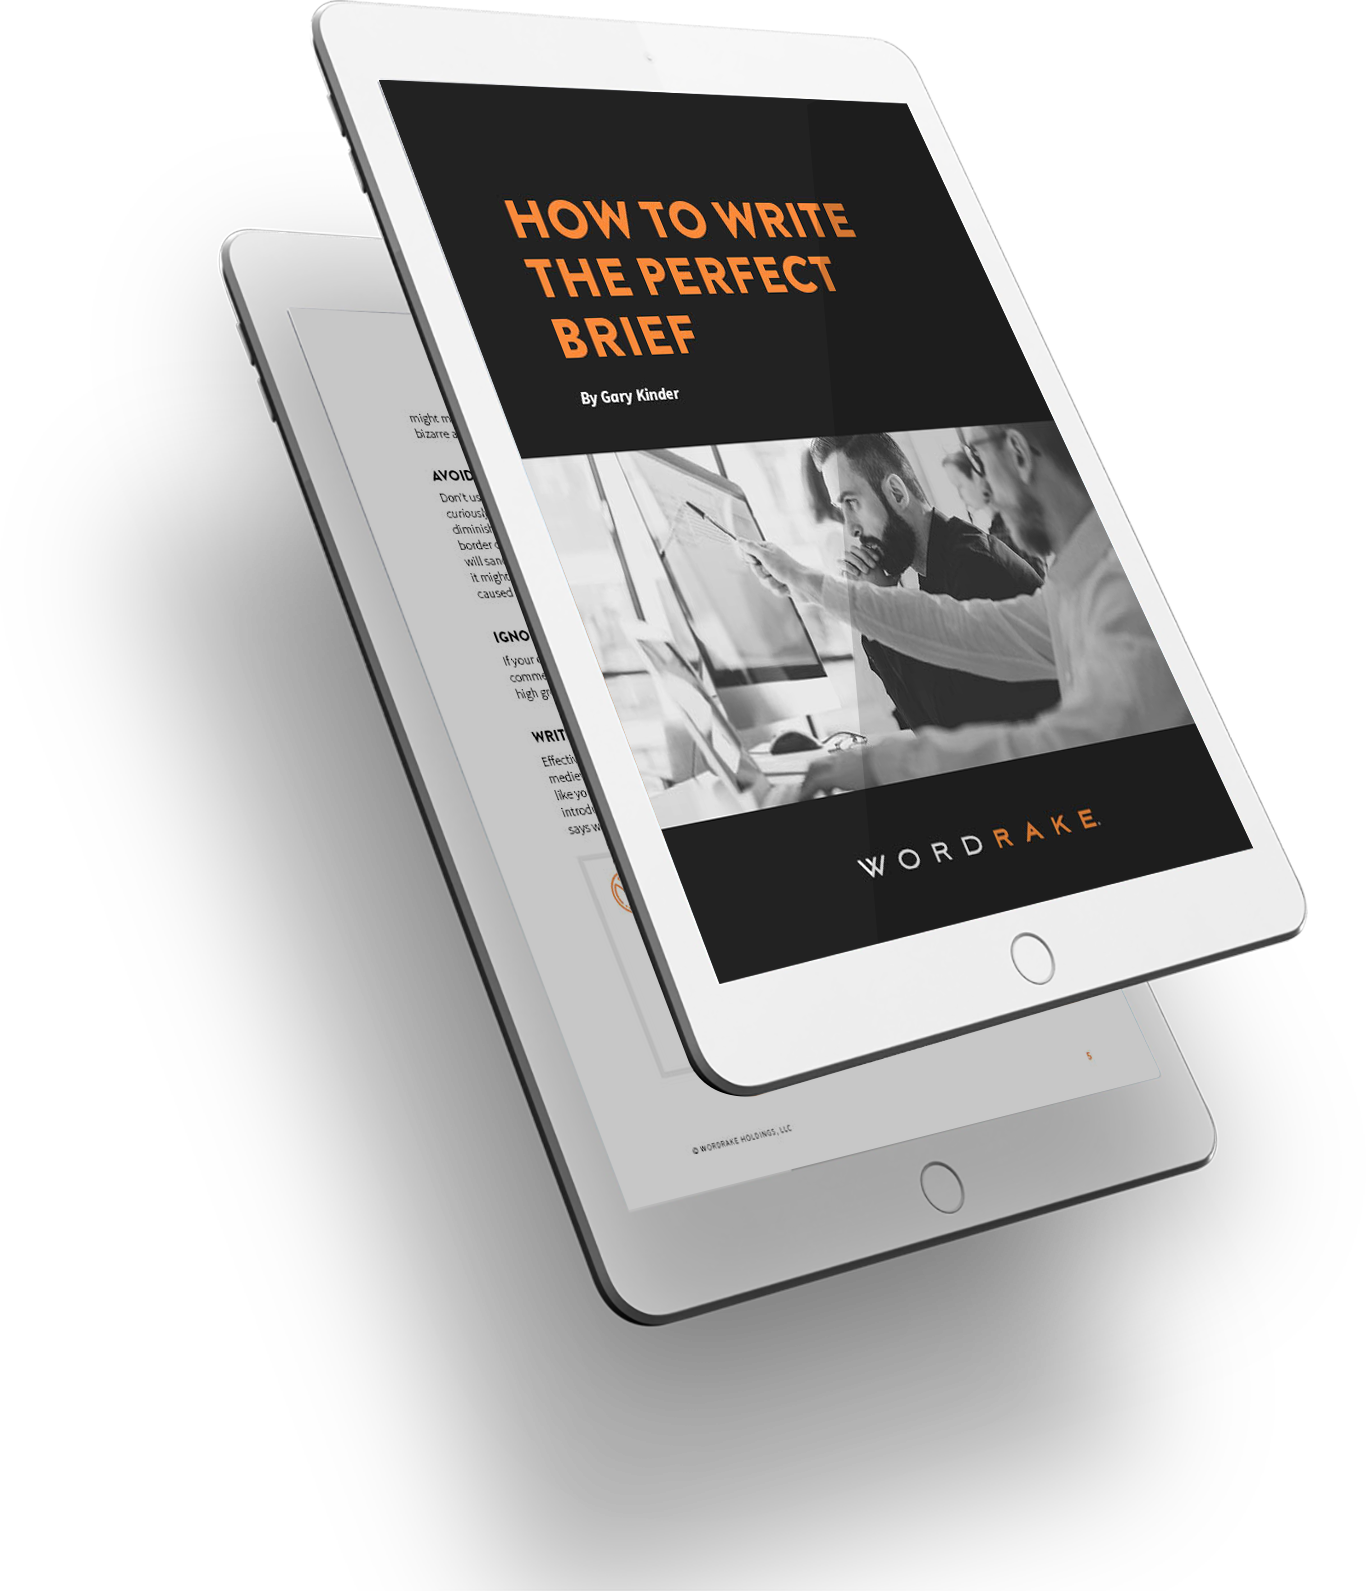 How to Write the Perfect Brief